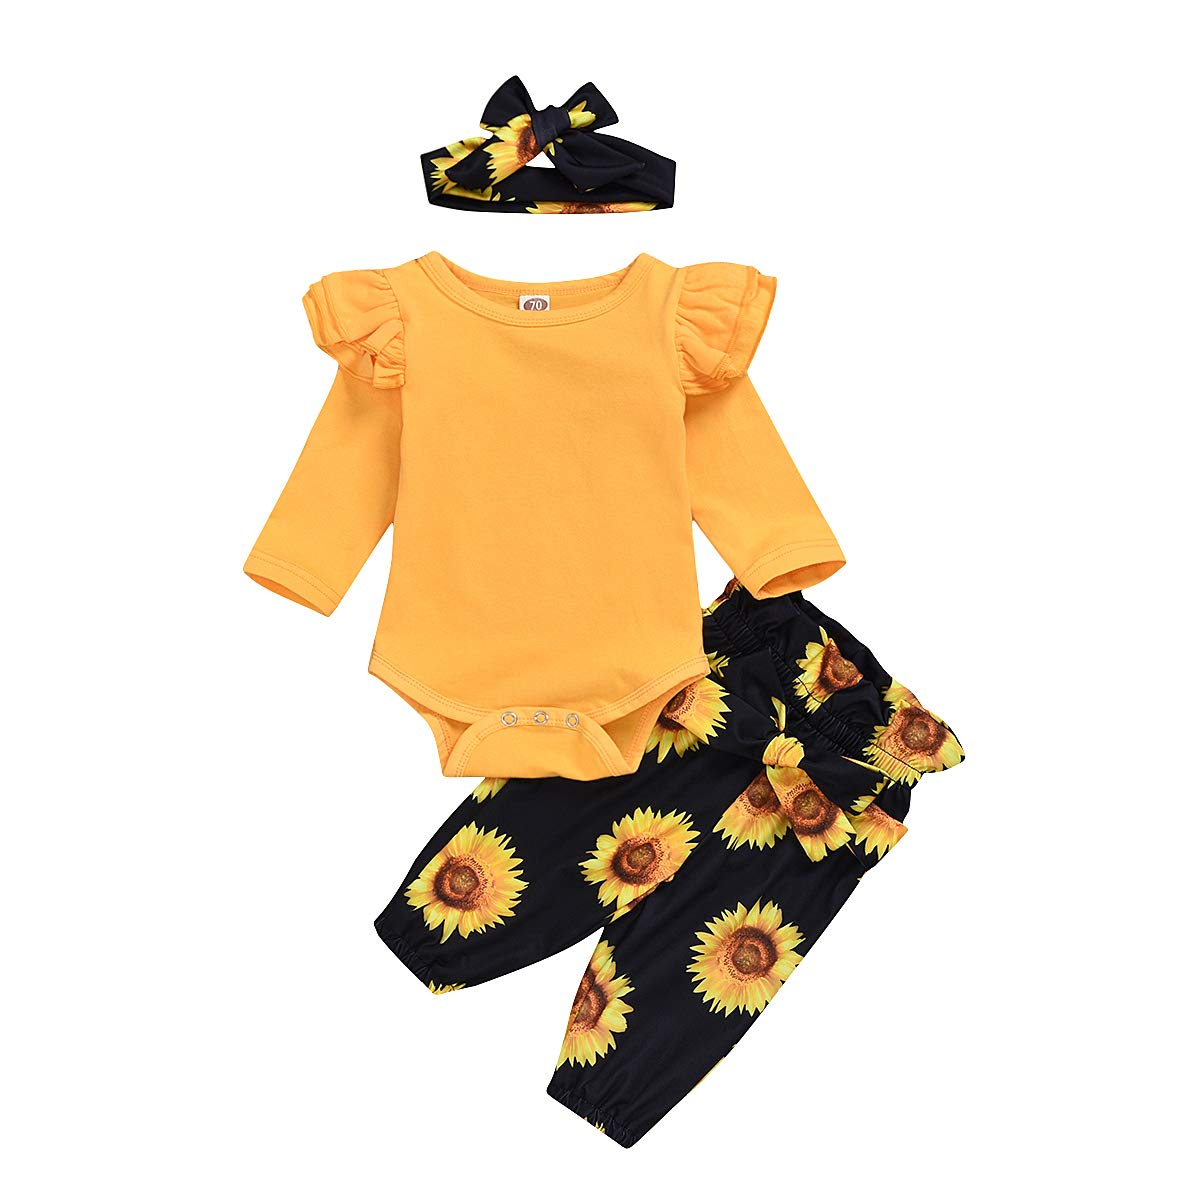 TUEMOS Newborn Baby Girl Pants Set Letter Print Romper Floral Pants with Headband 3PC Clothes